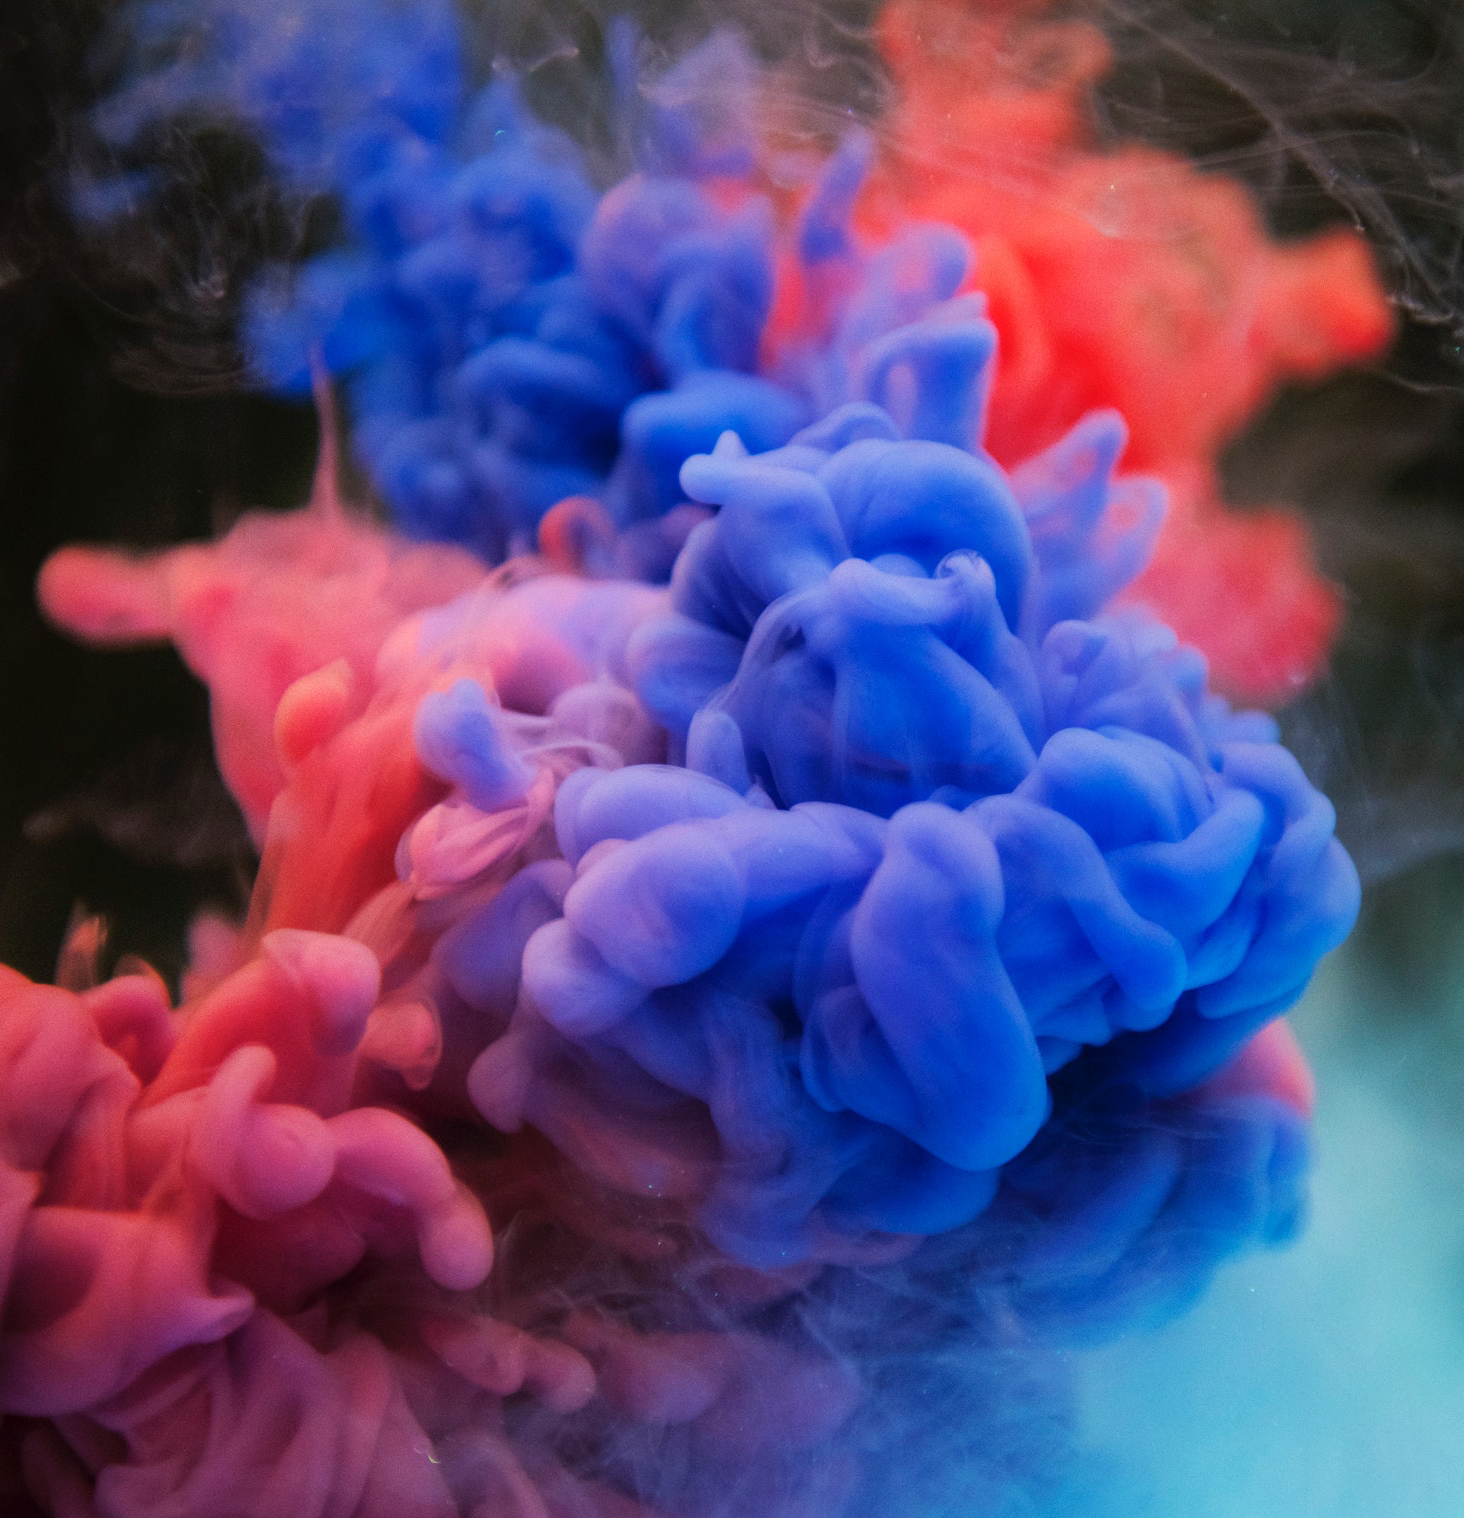 Abstract image of red and blue smoke